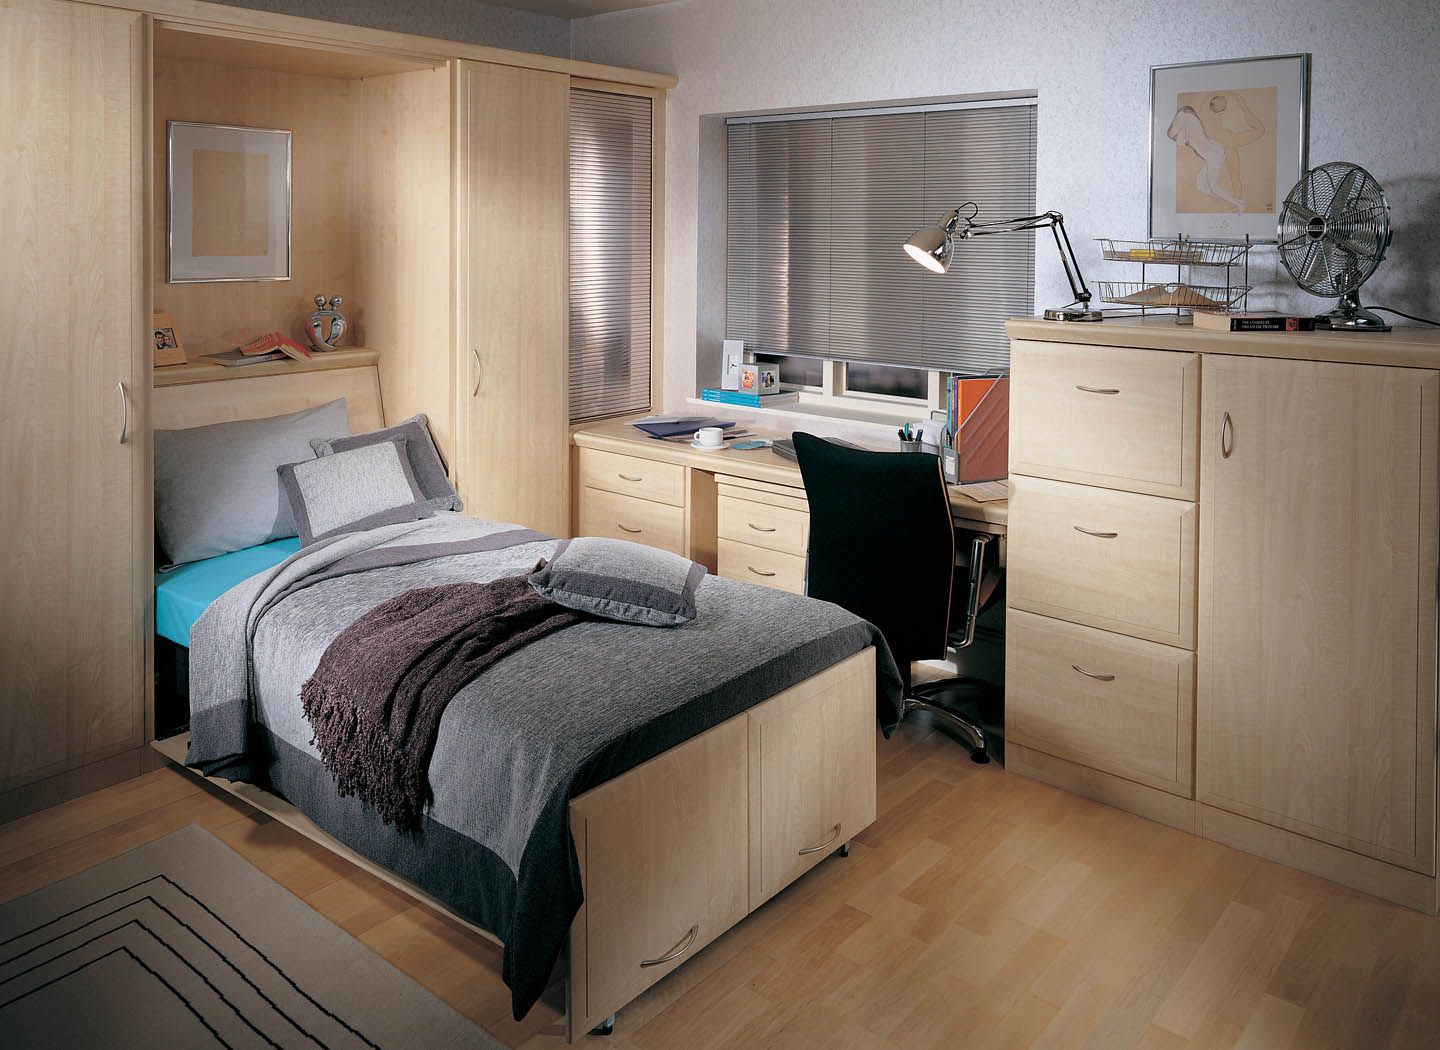 Bedroom Design Apps Image From Httpswwwstrachancoukappuploadswallbedlp